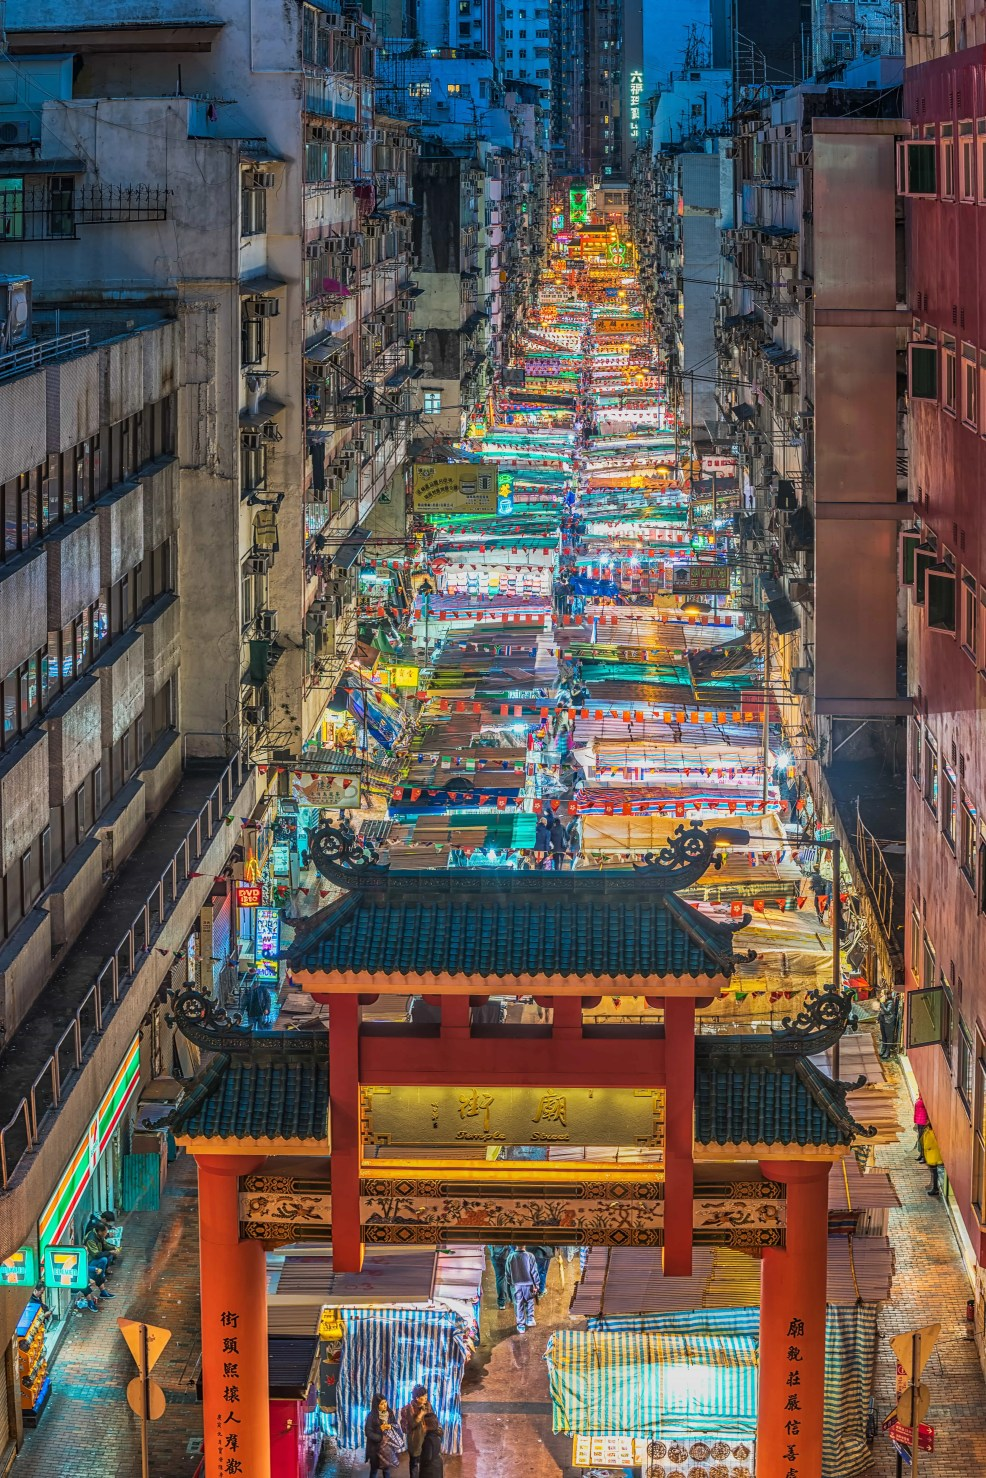 temple street market, instagrammable places in hong kong